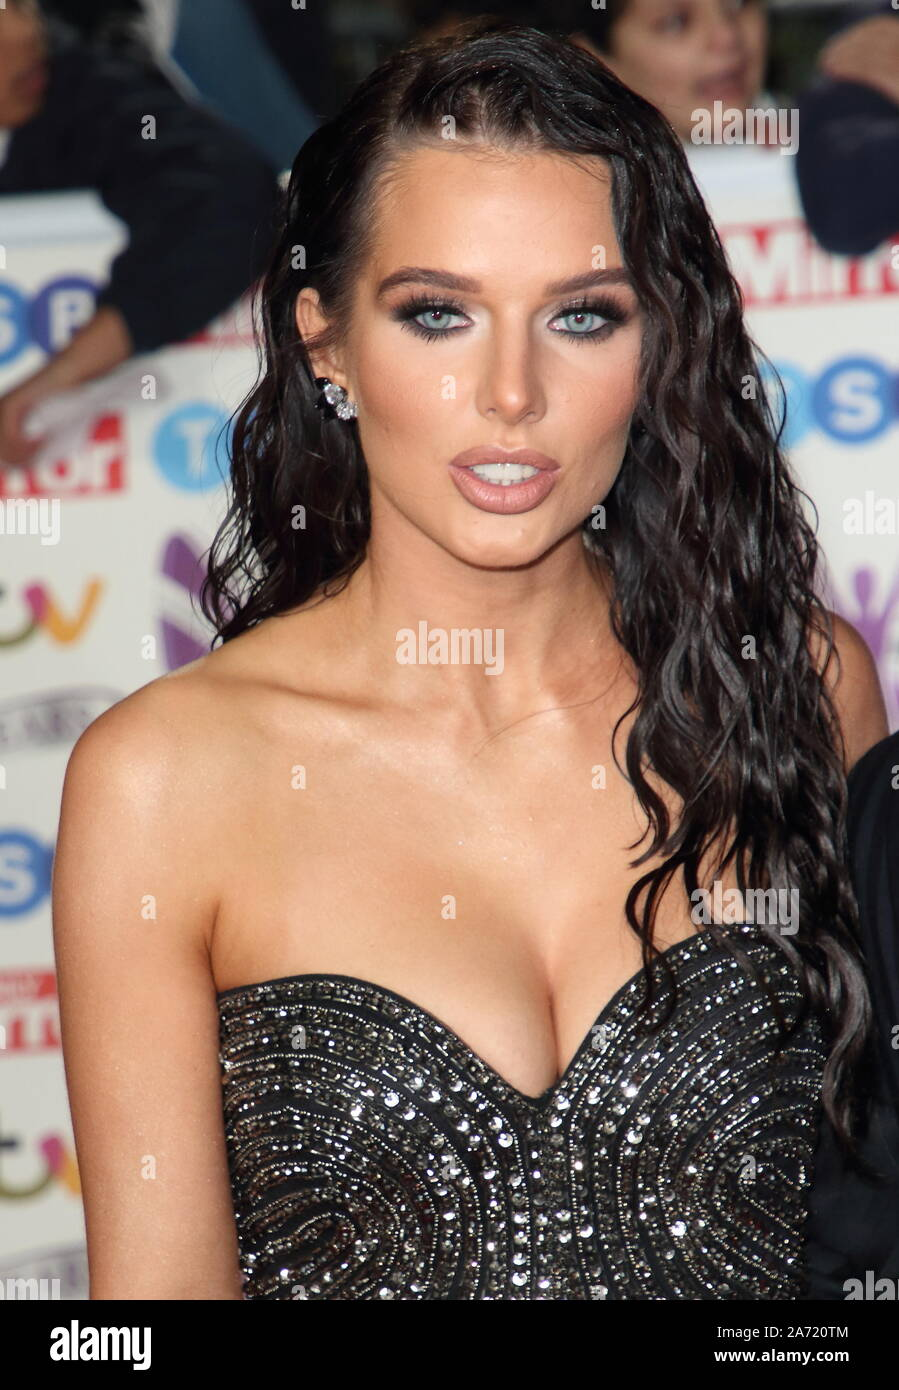 Helen Flanagan High Resolution Stock Photography And Images Alamy